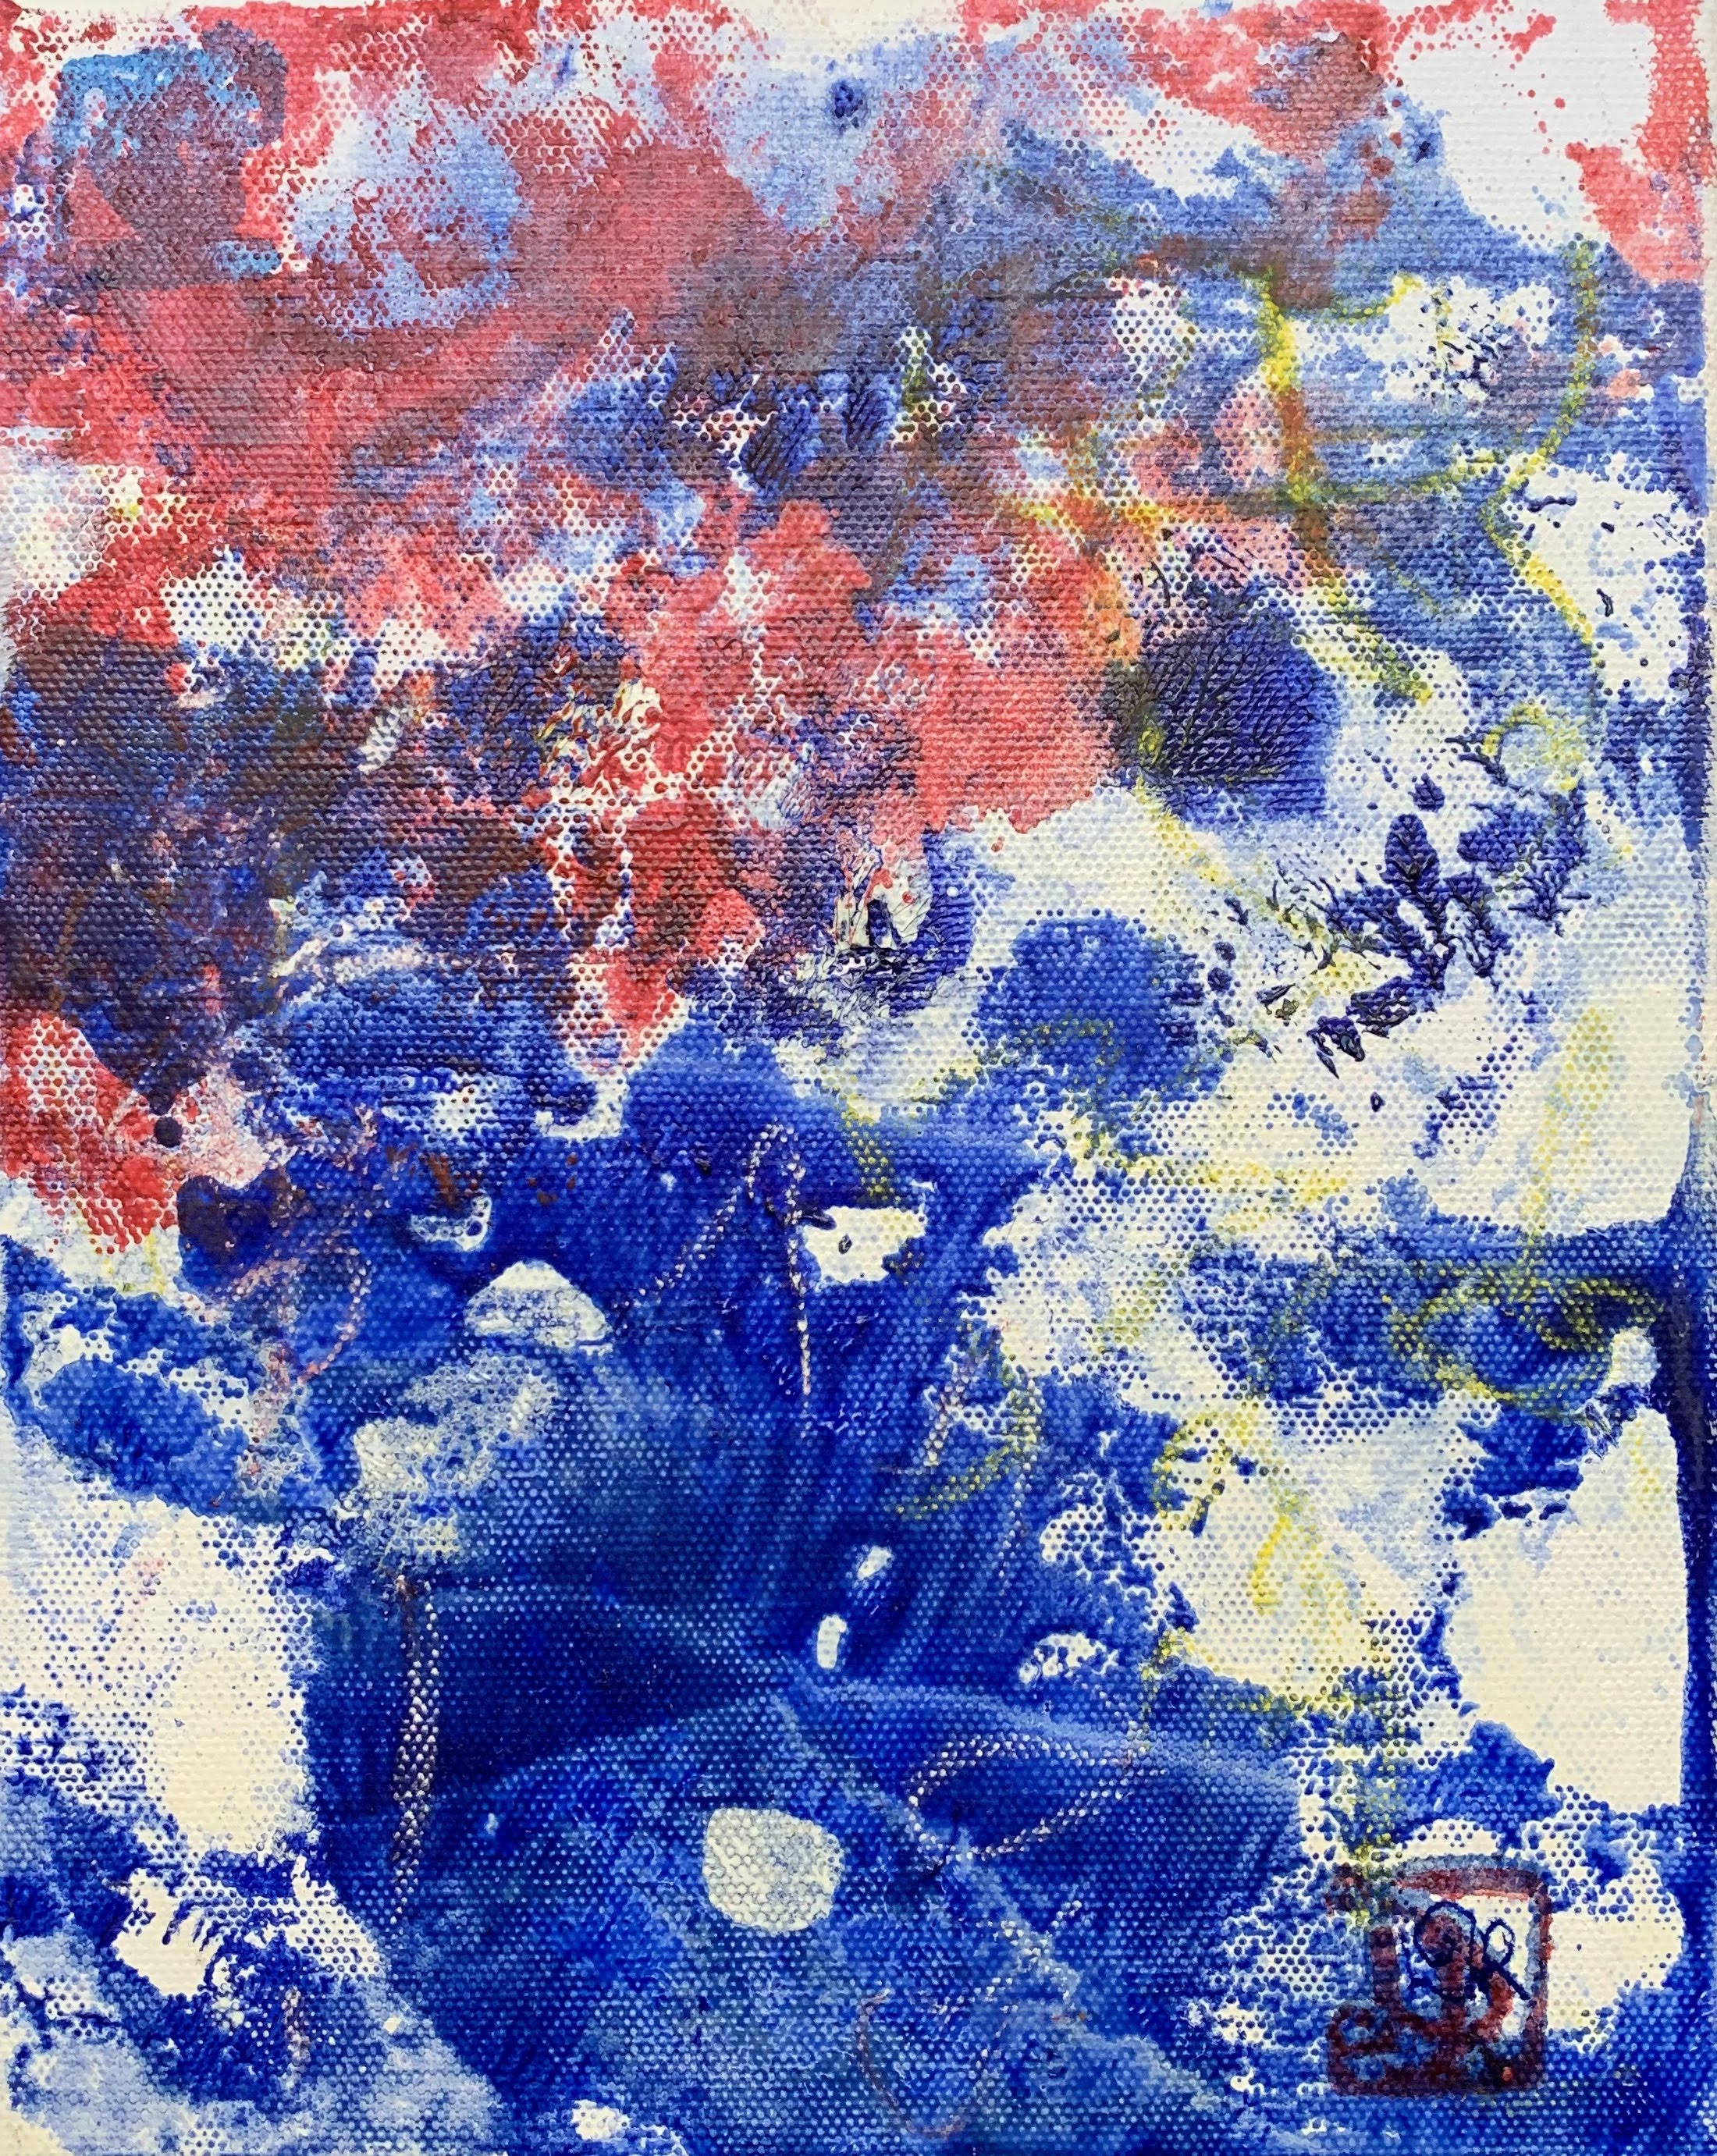 Red White and Blue - $200